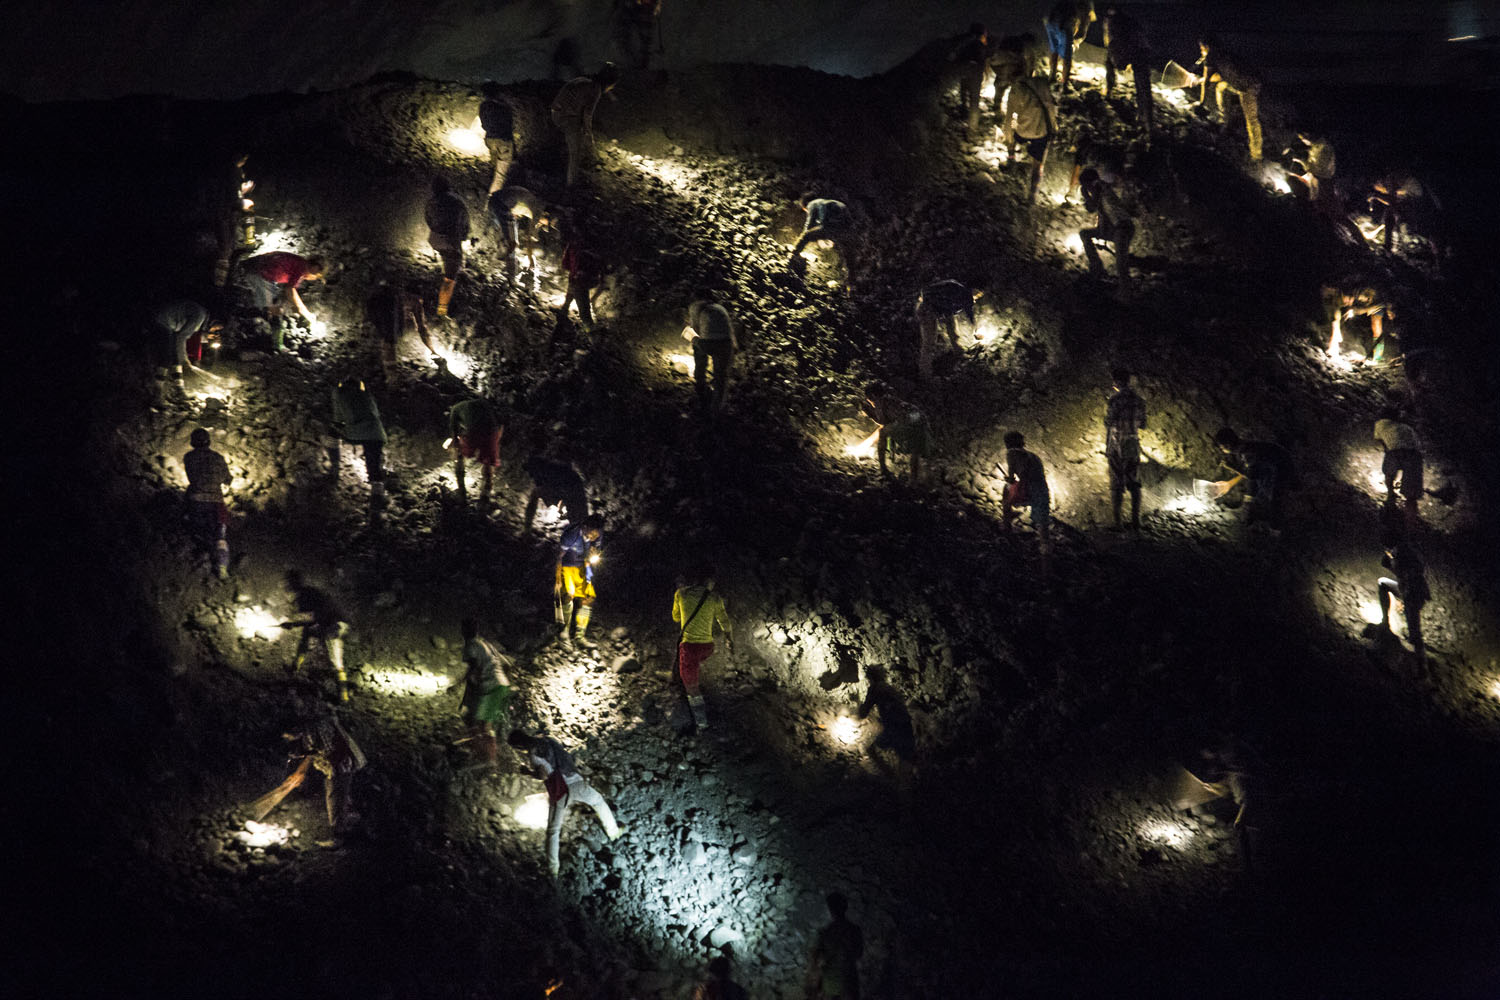 Miners with torchlights on their heads go over a pile of company mining waste, looking for jade. Hpakant, 2015